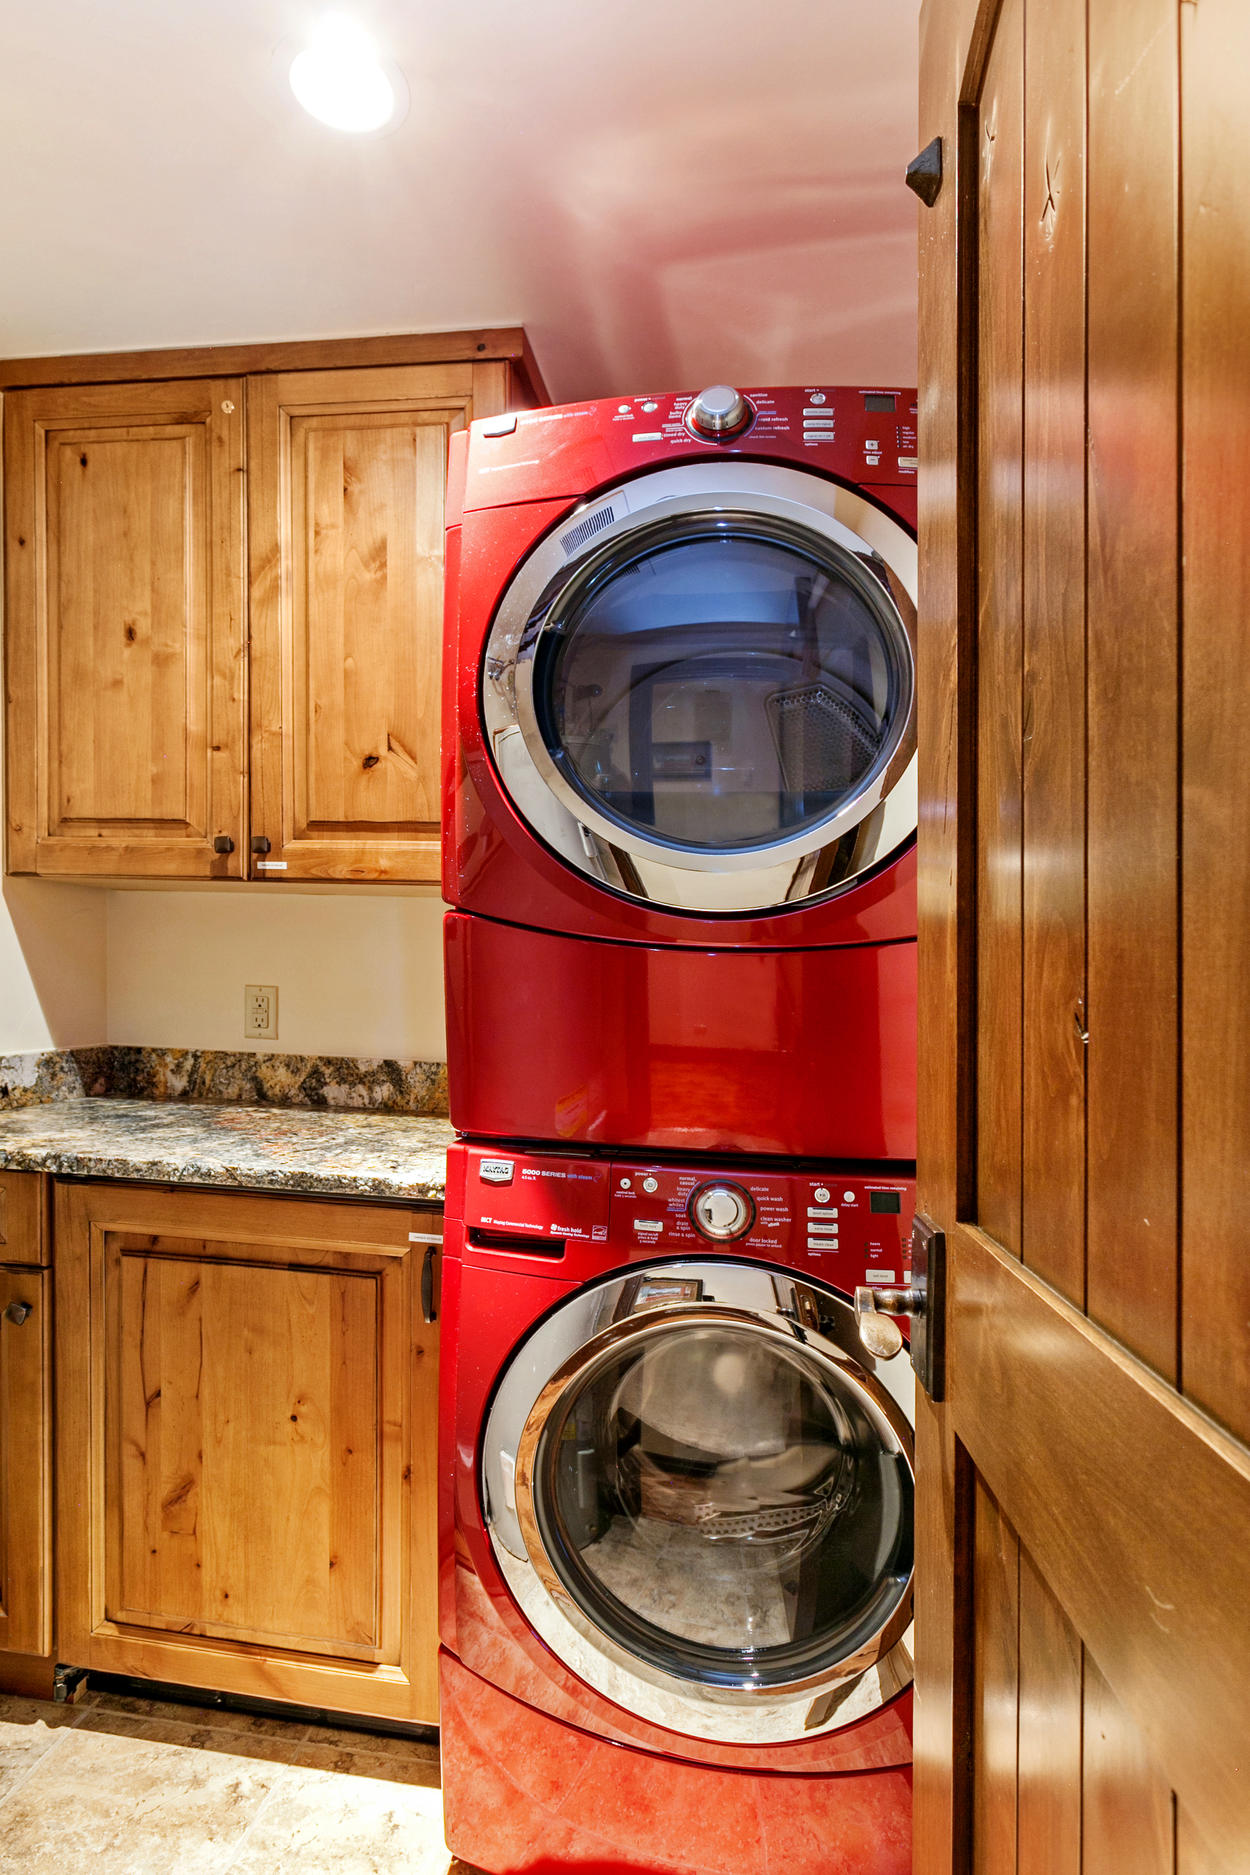 A tucked away laundry room features a stacked washer and dryer.